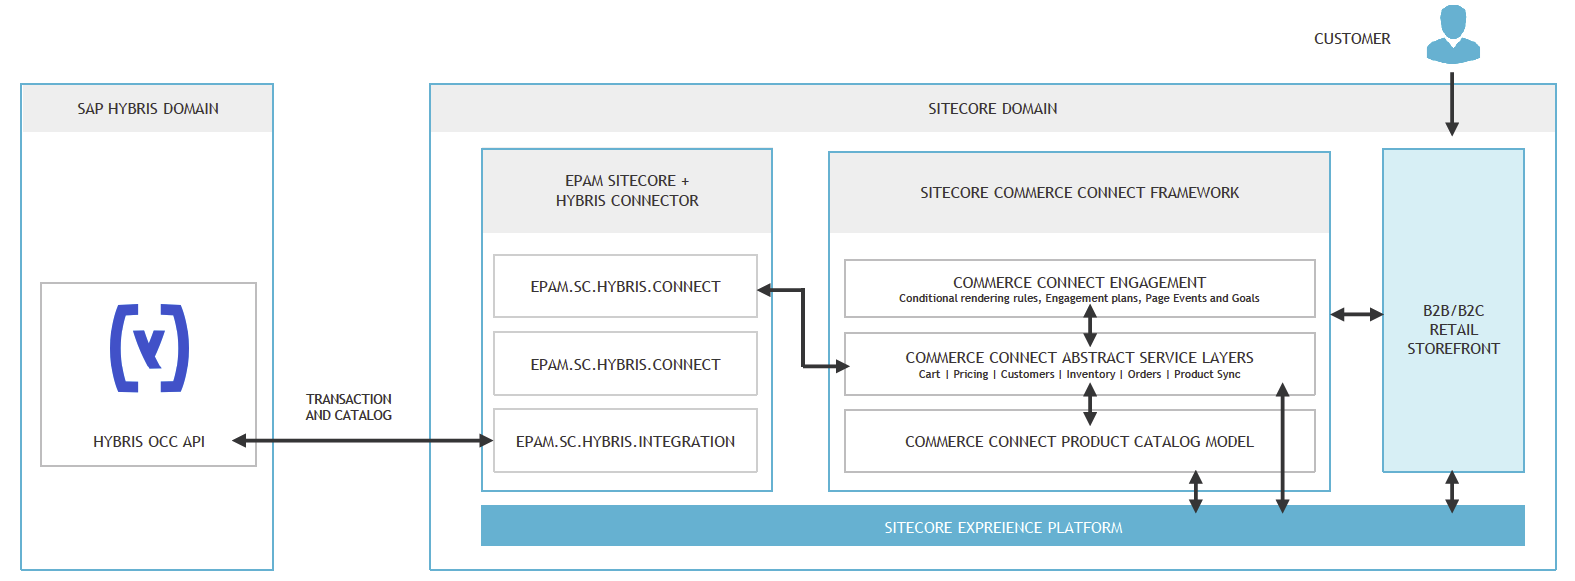 The power of best of breed: Integrating SAP Hybris and Sitecore